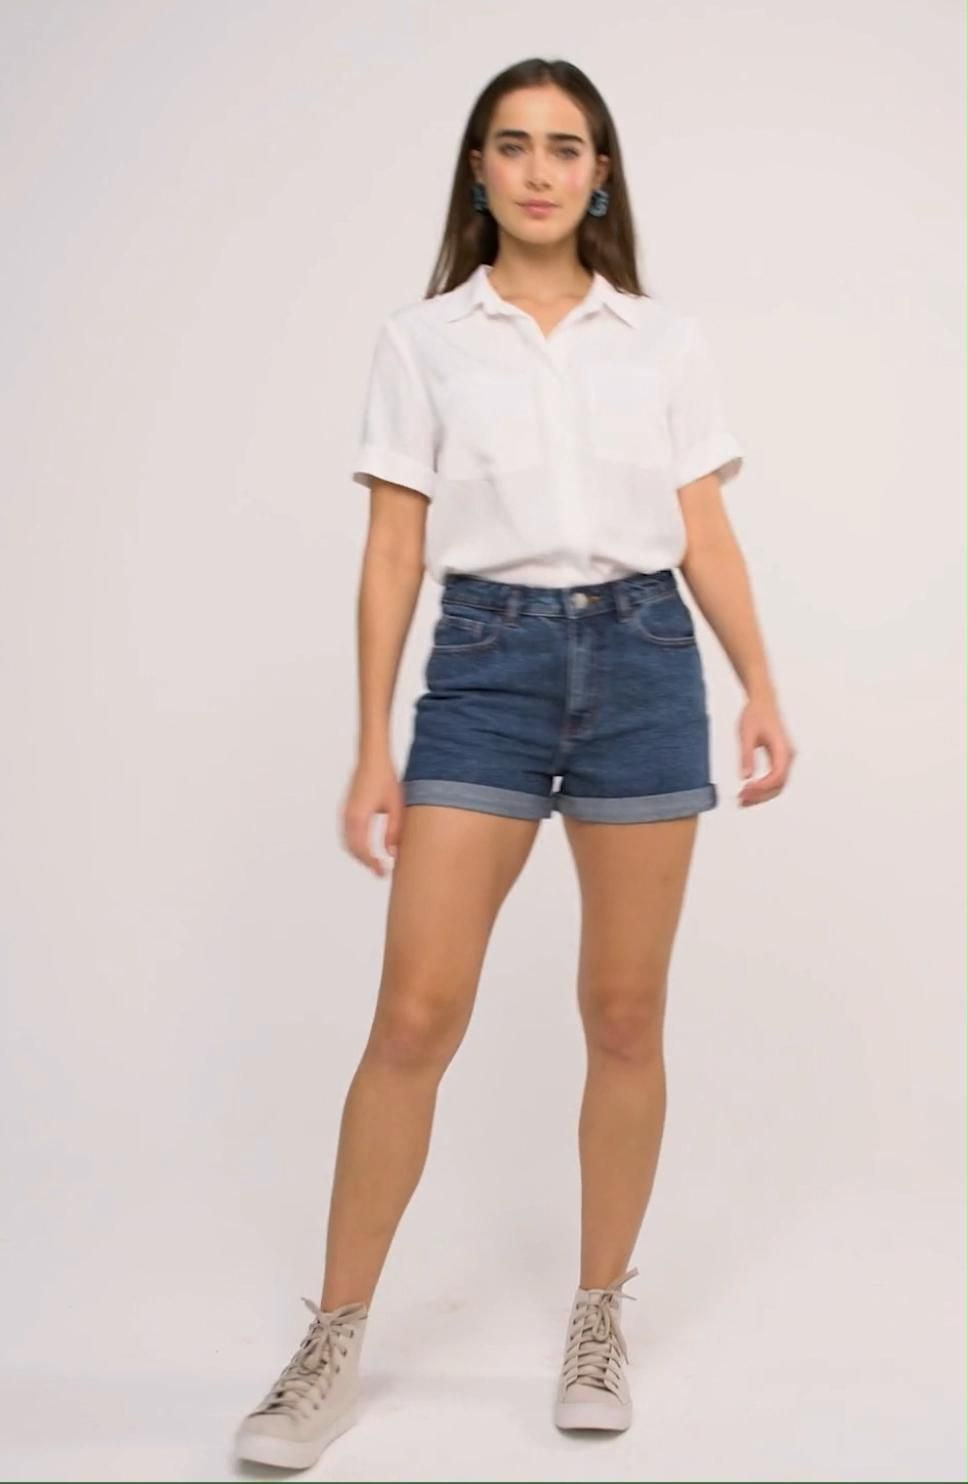 Short Jeans For Women Mum Shorts Mother Of The Groom Short Dresses Low Rise Jeans Shorts